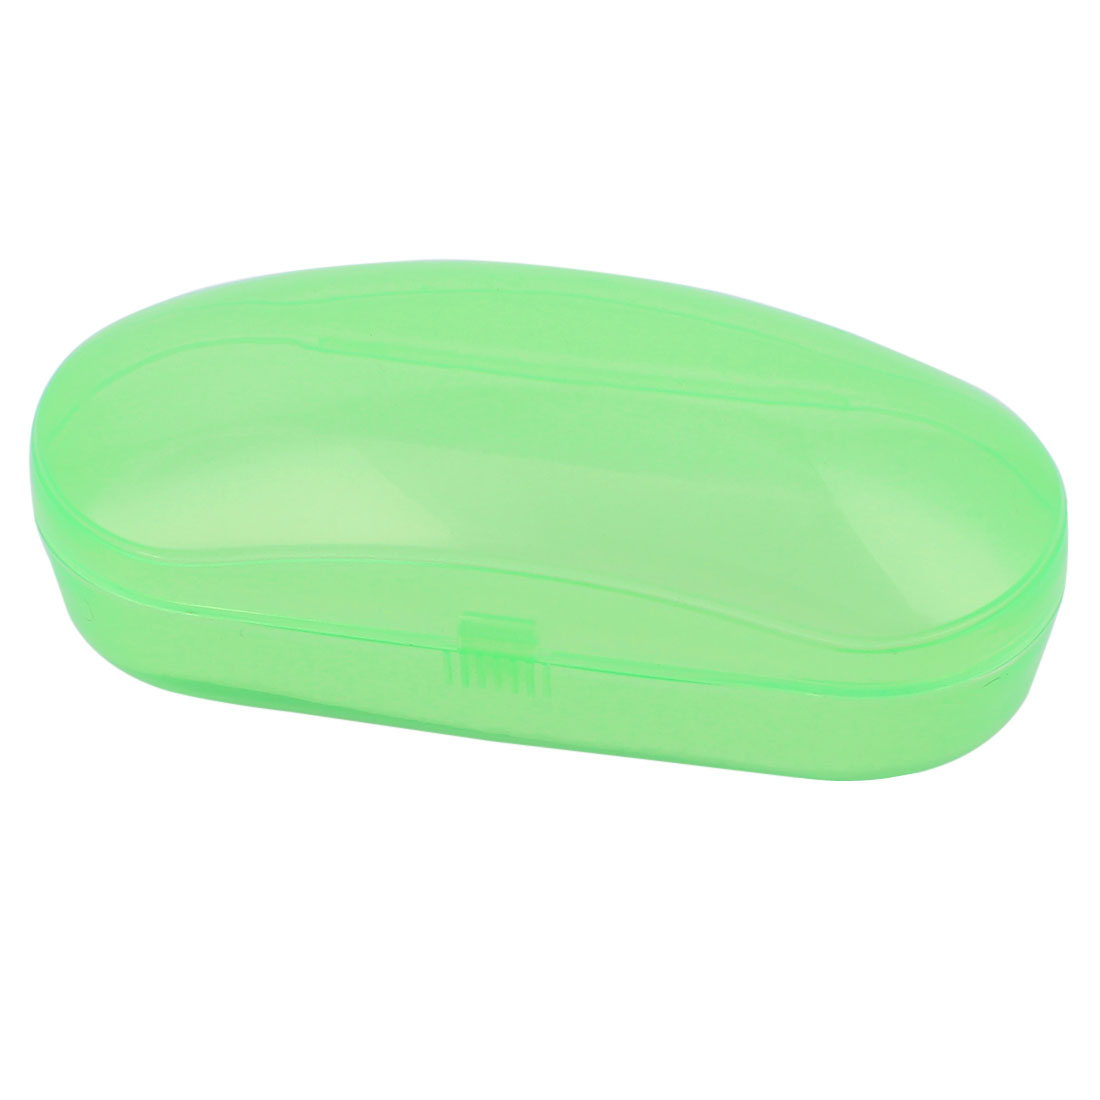 Portable Clear Green Plastic Sunglasses Eyeglasses Glasses Case Box Container Holder